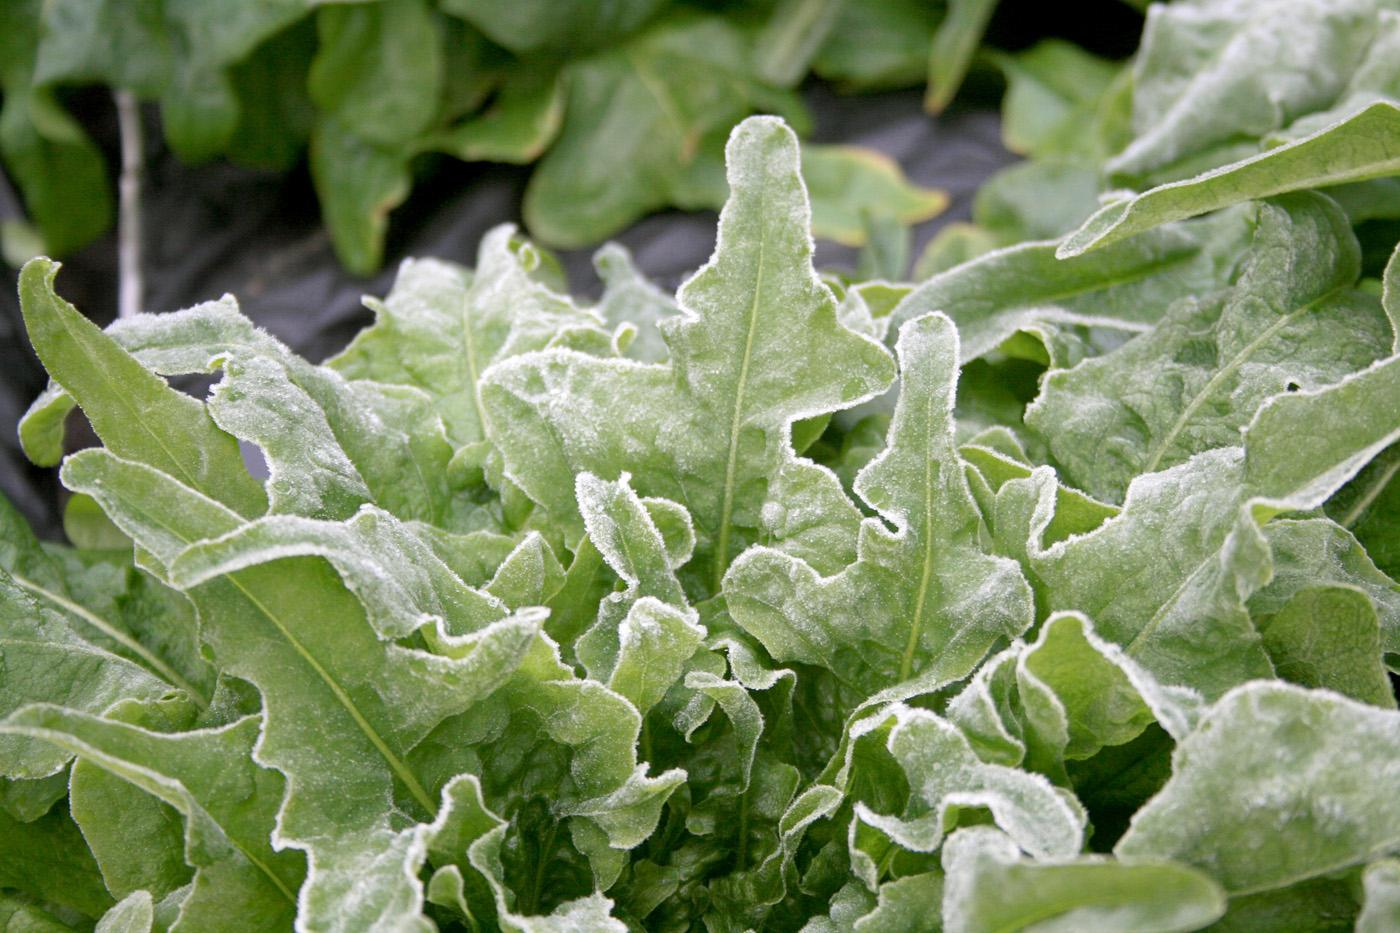 Many garden plants can tolerate frost, such as this cool season lettuce coated with frost. (Photo by Gary Bachman)